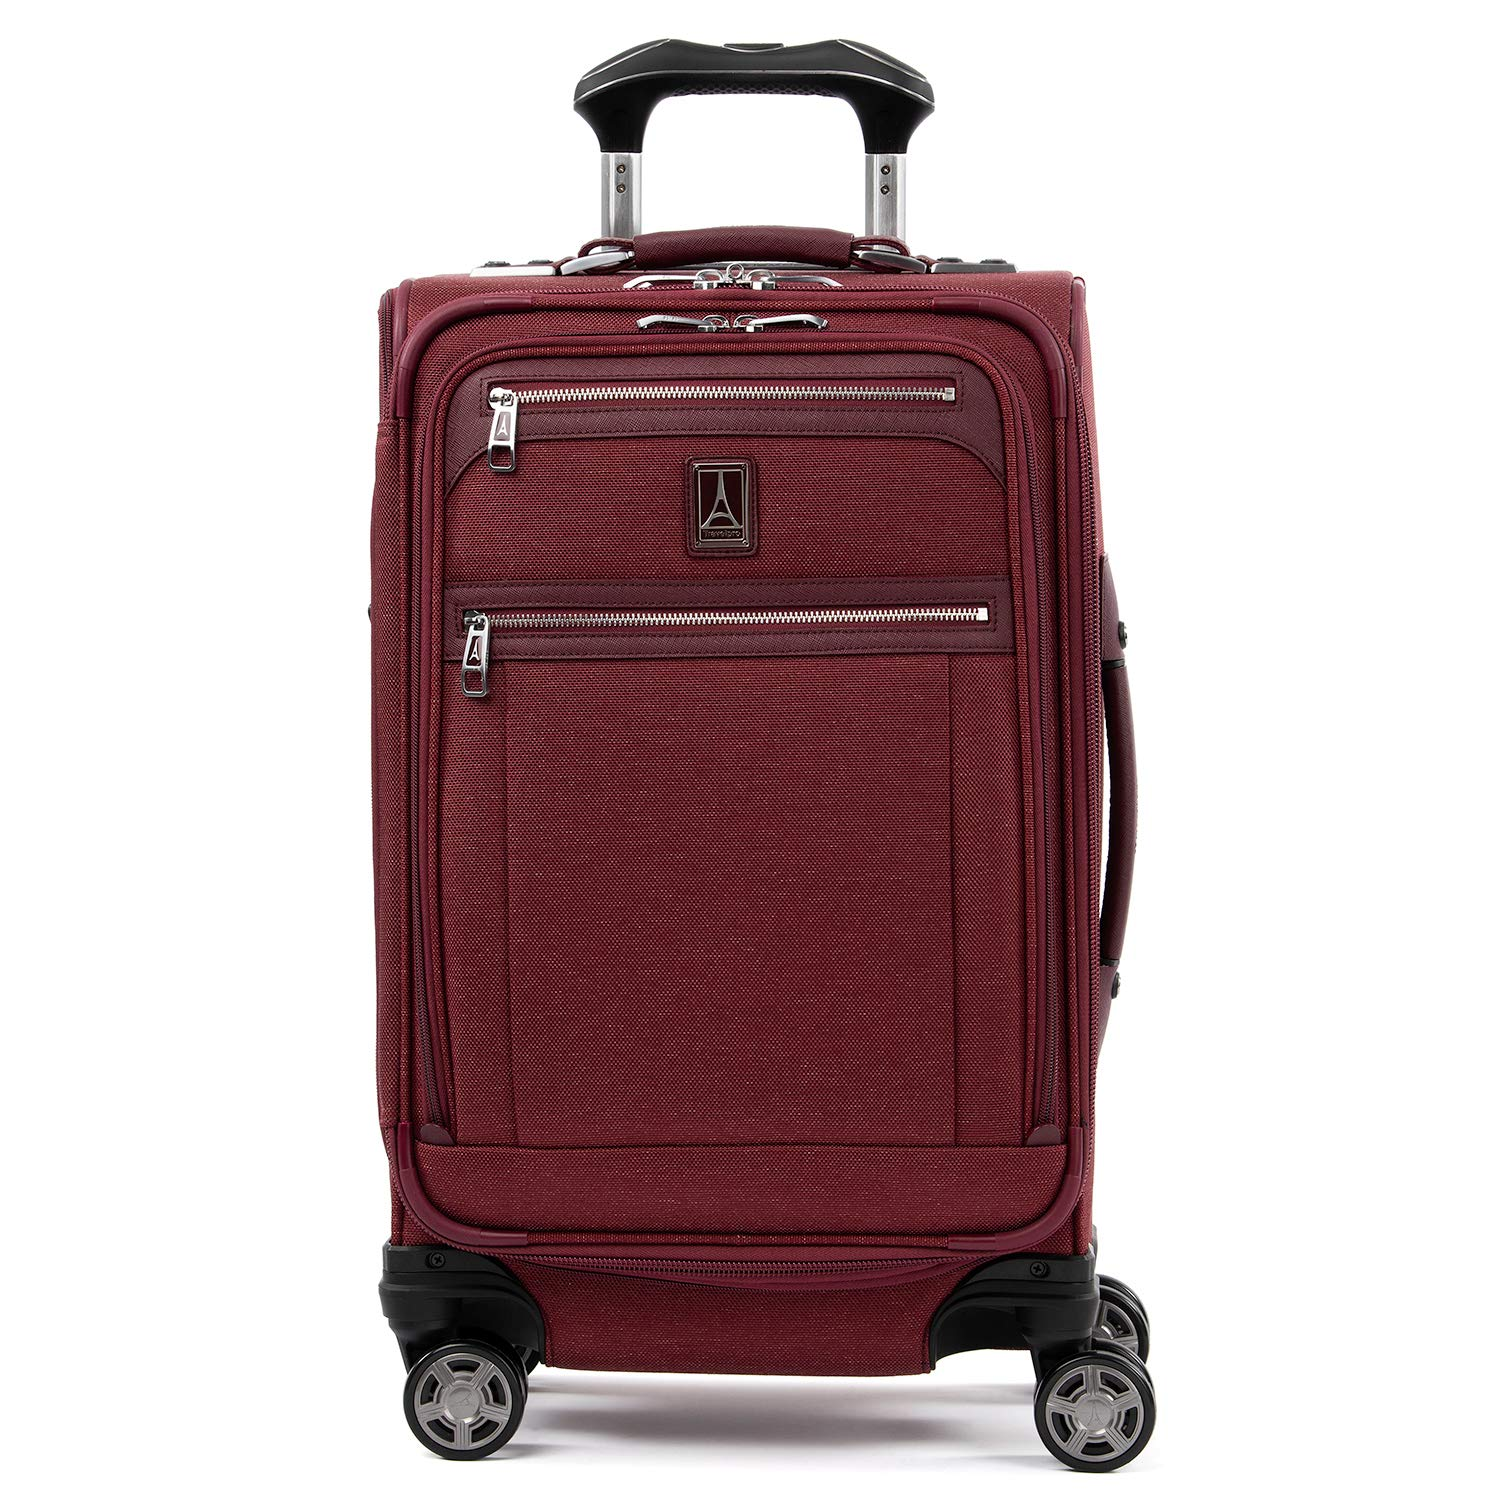 Travelpro Luggage Platinum Elite 21'' Carry-on Expandable Spinner w/USB Port, Bordeaux